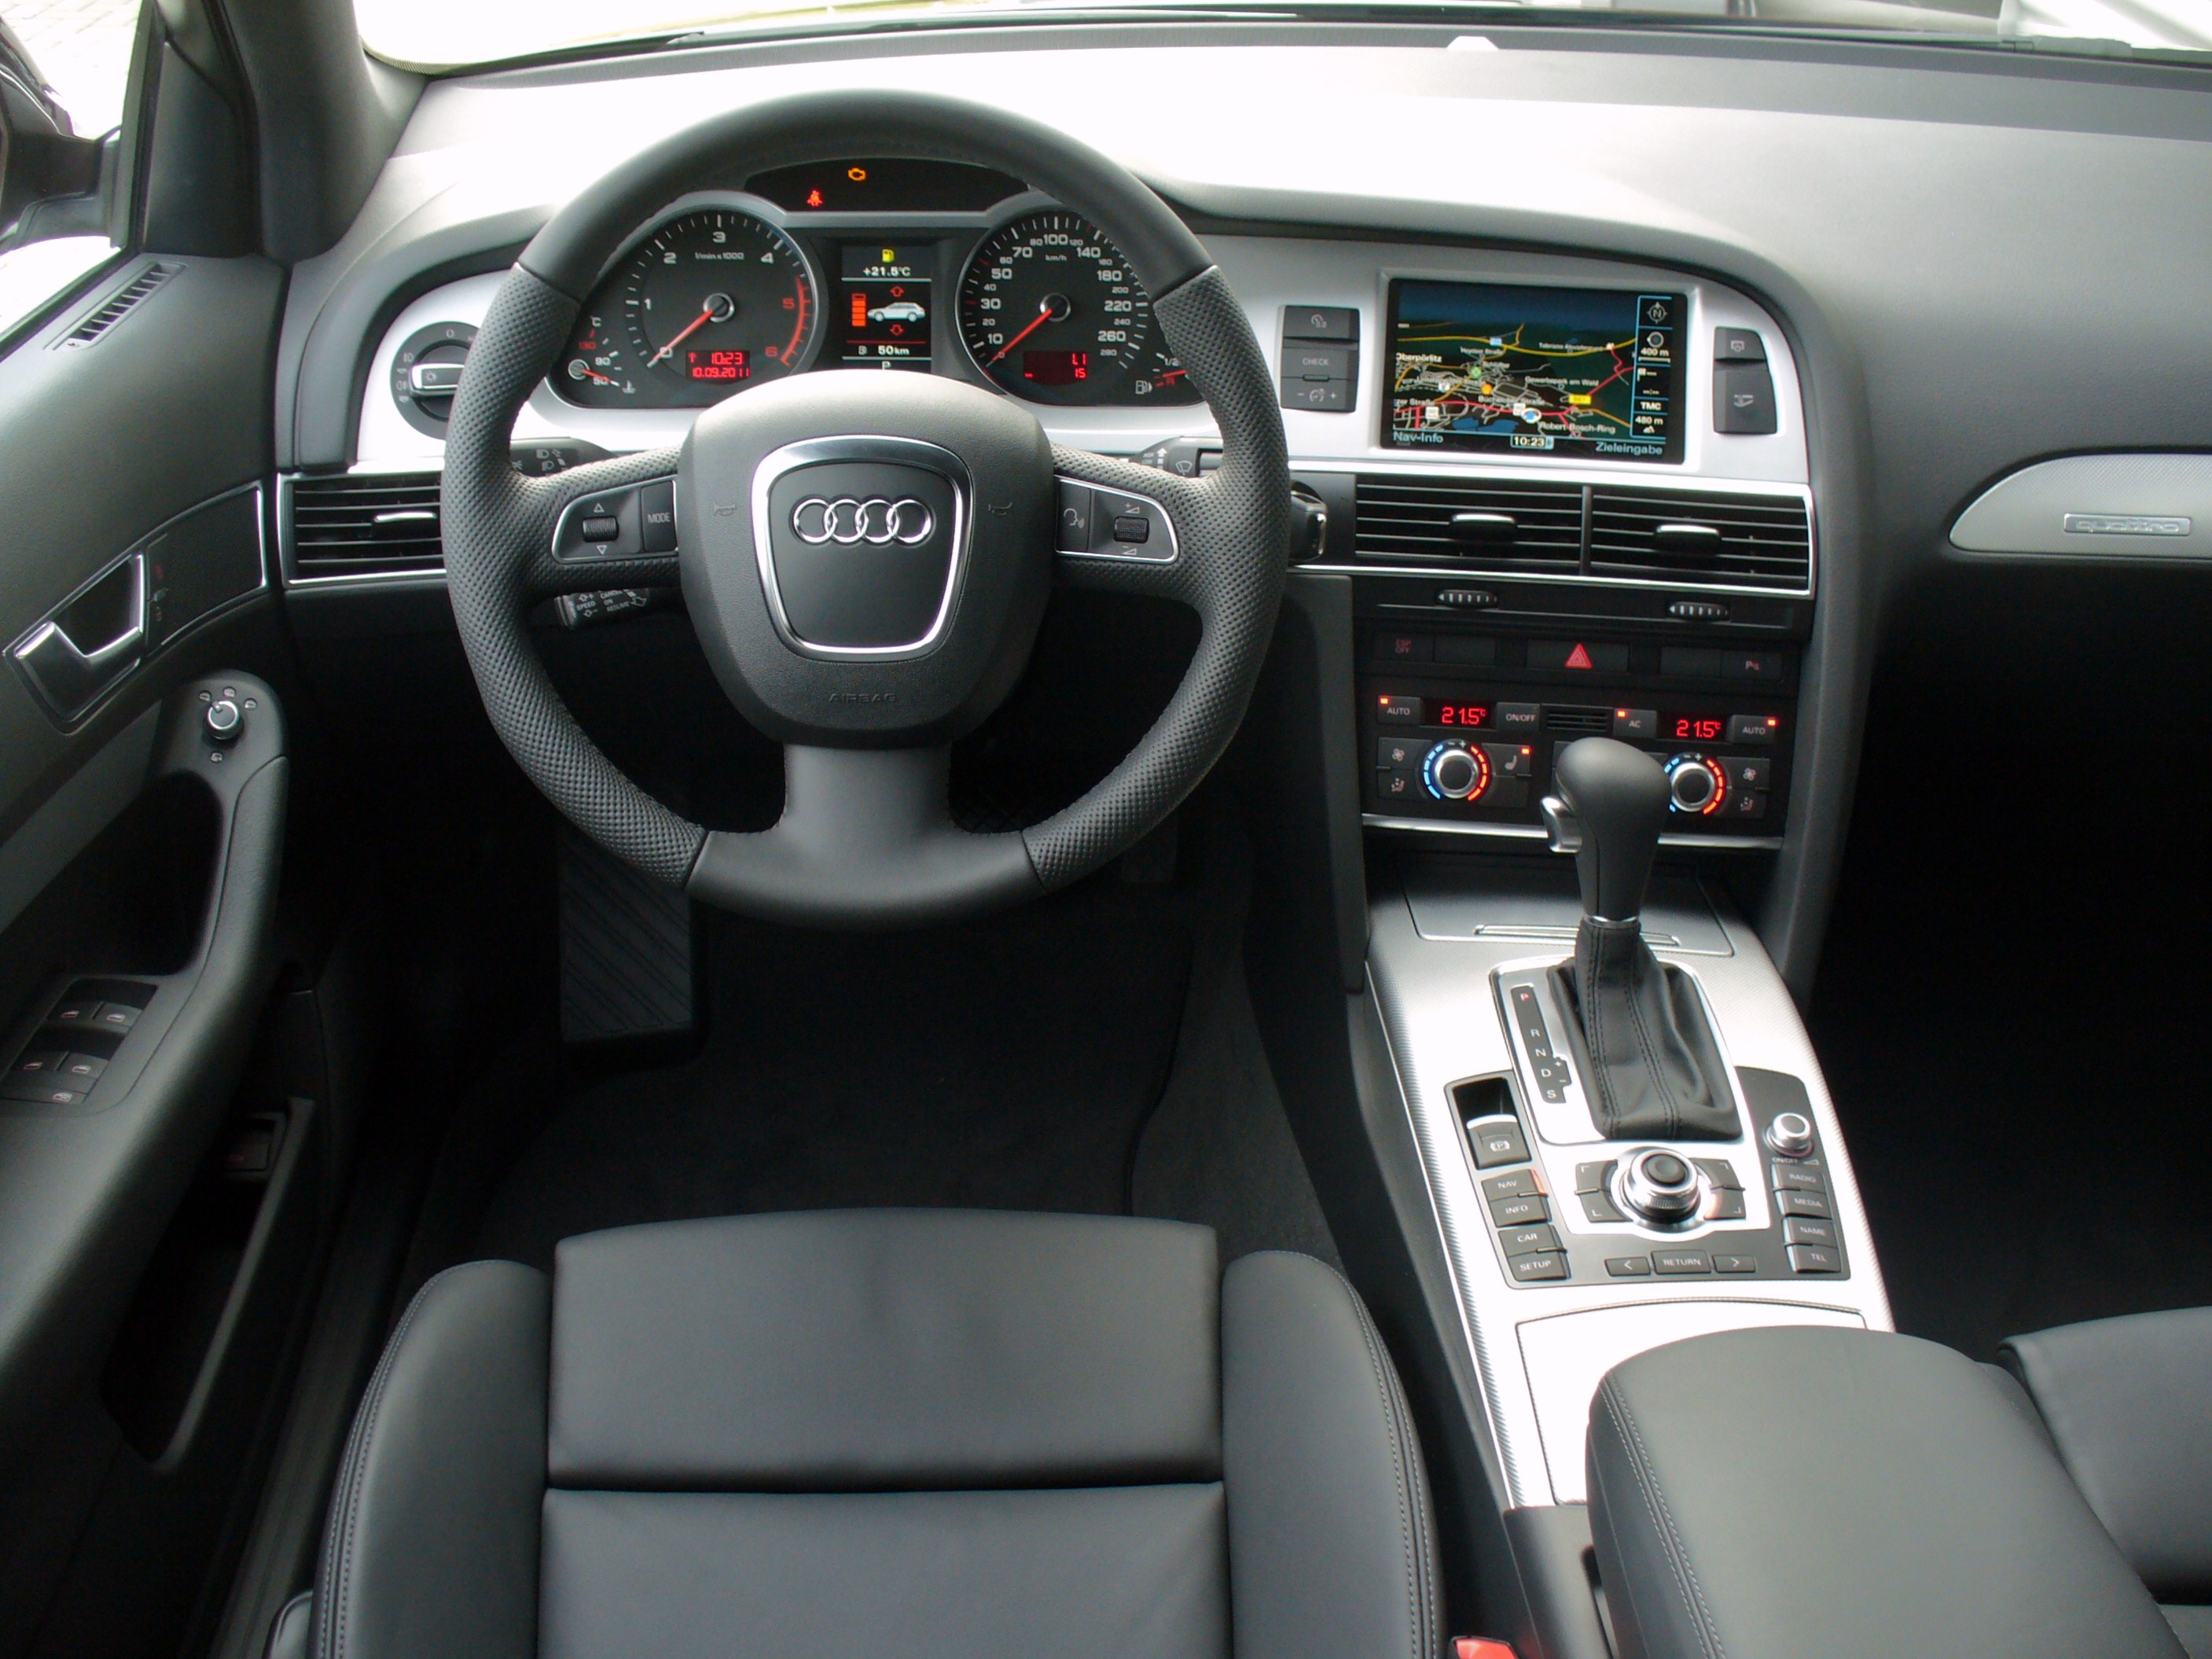 Used 2005 Audi TT For Sale  CarGurus